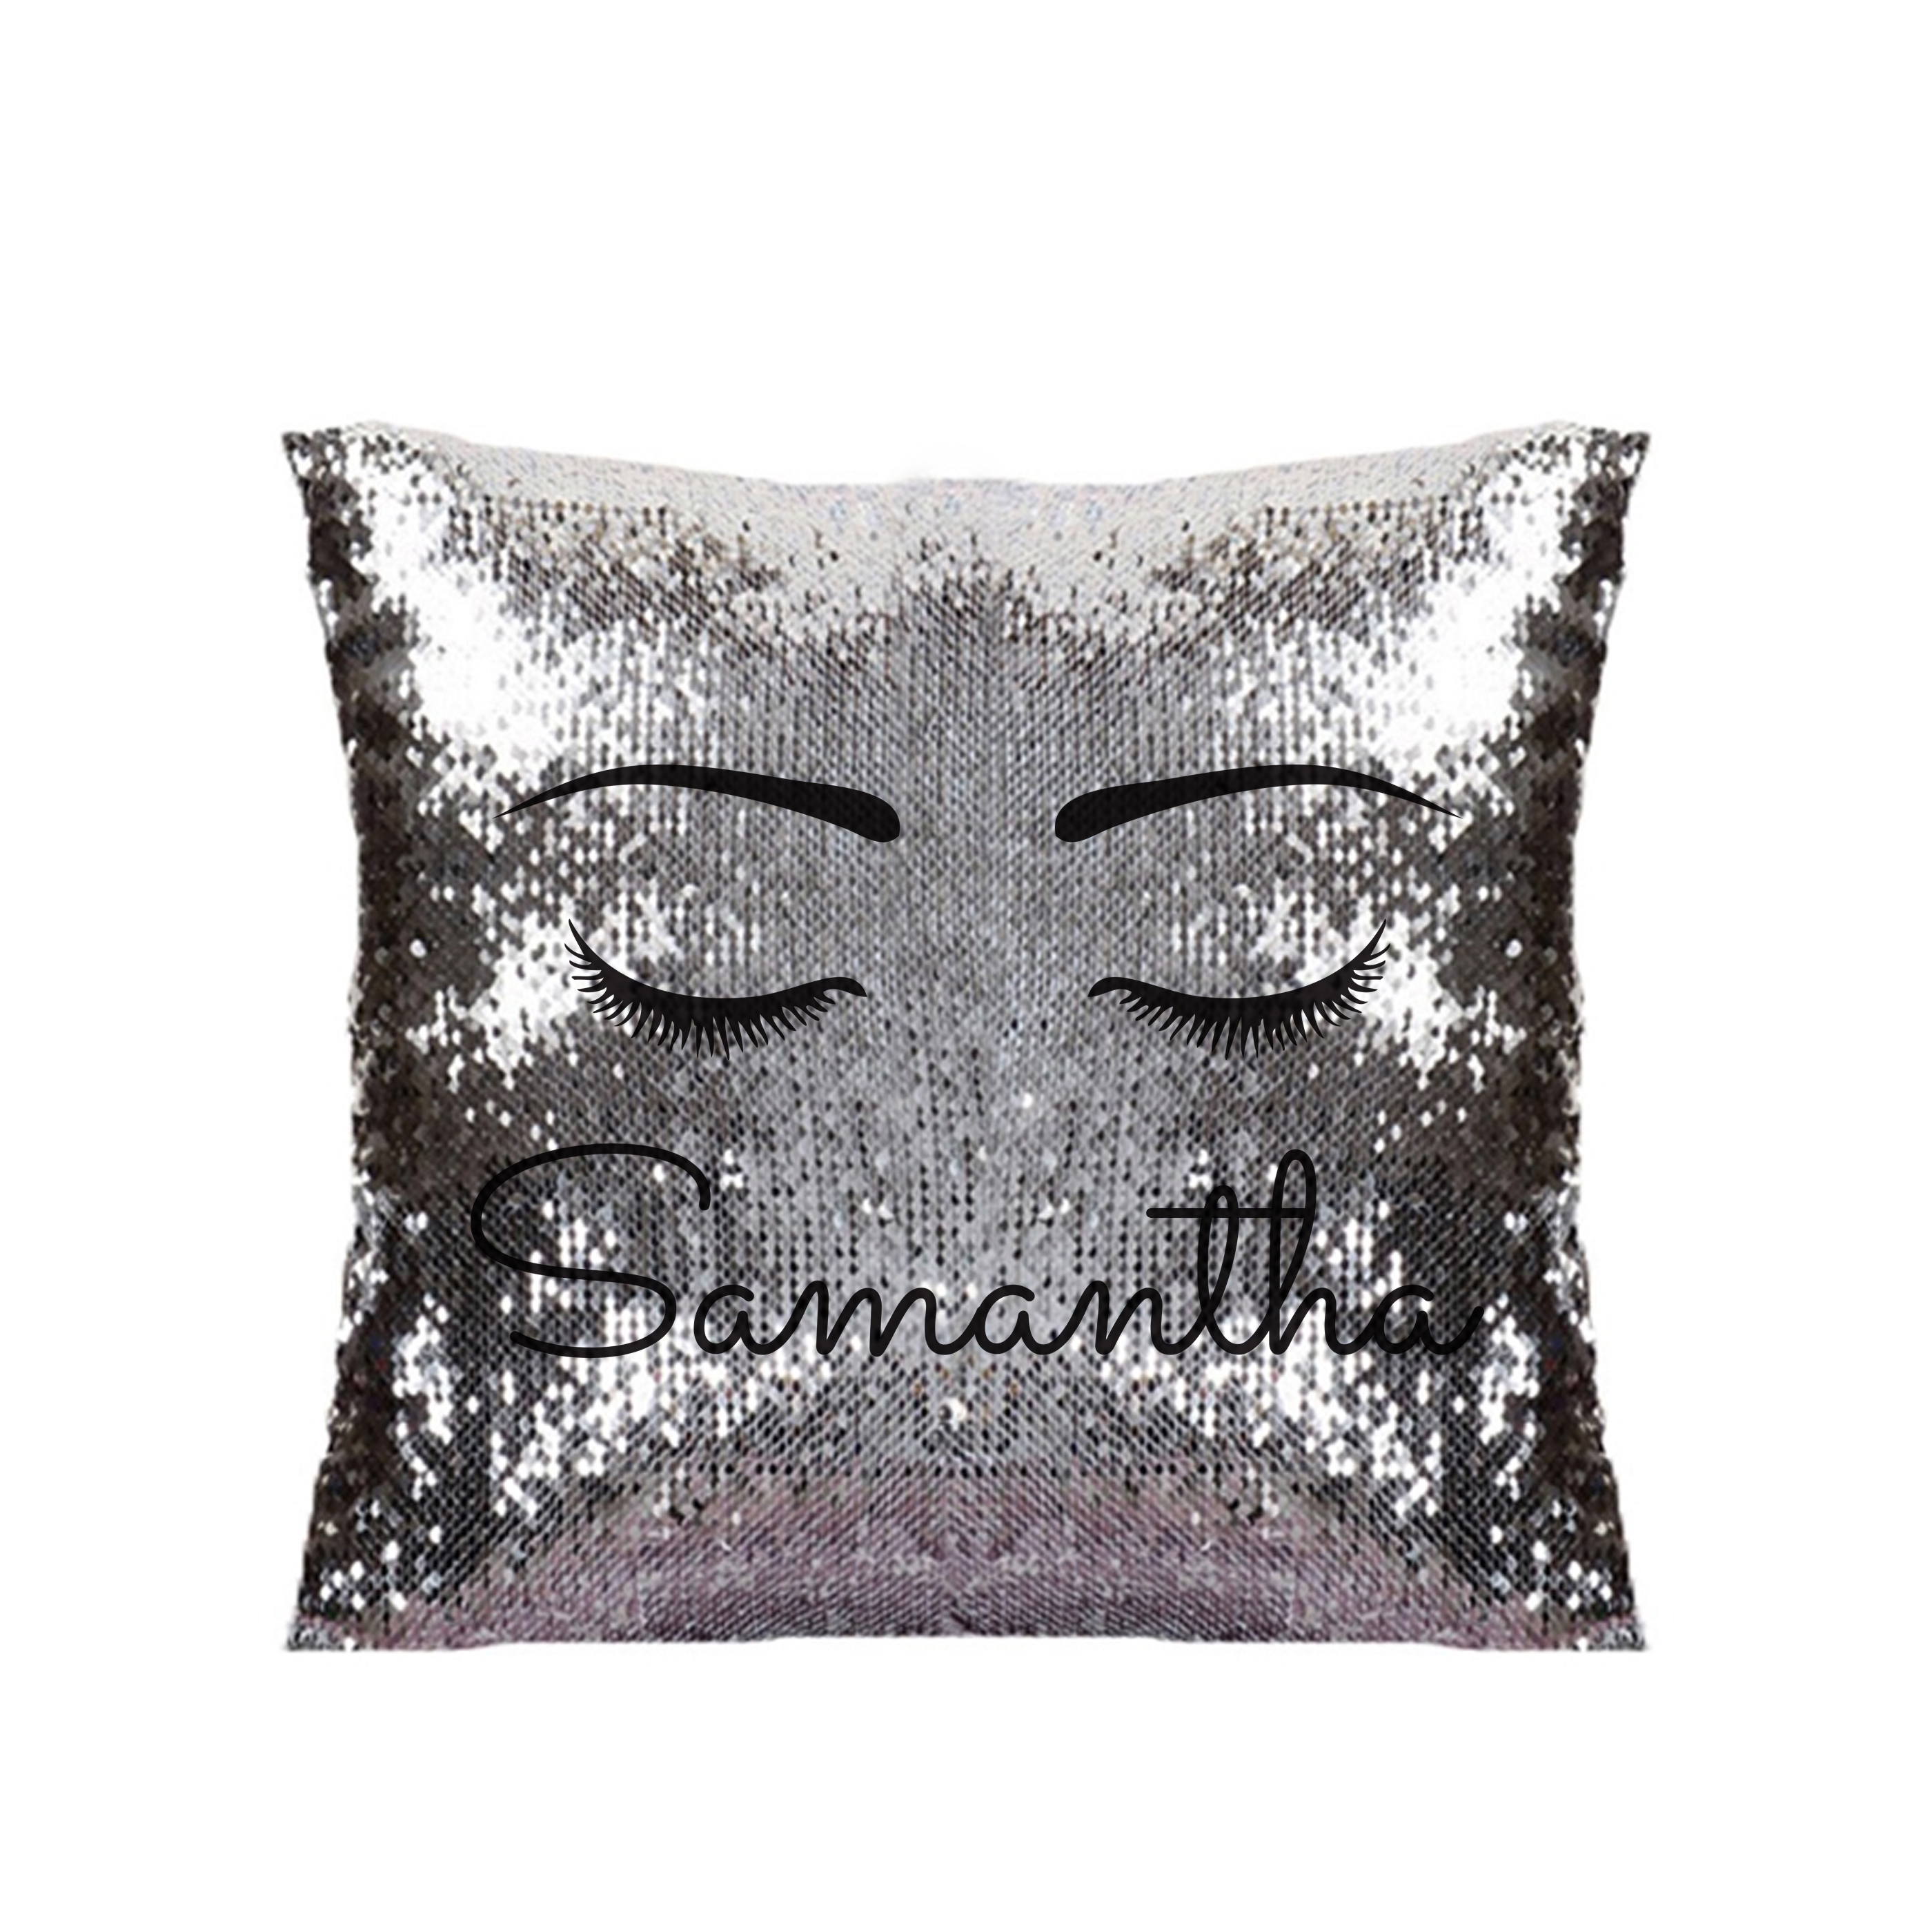 Eyelash Silver & Black Sequin Cushion Cover